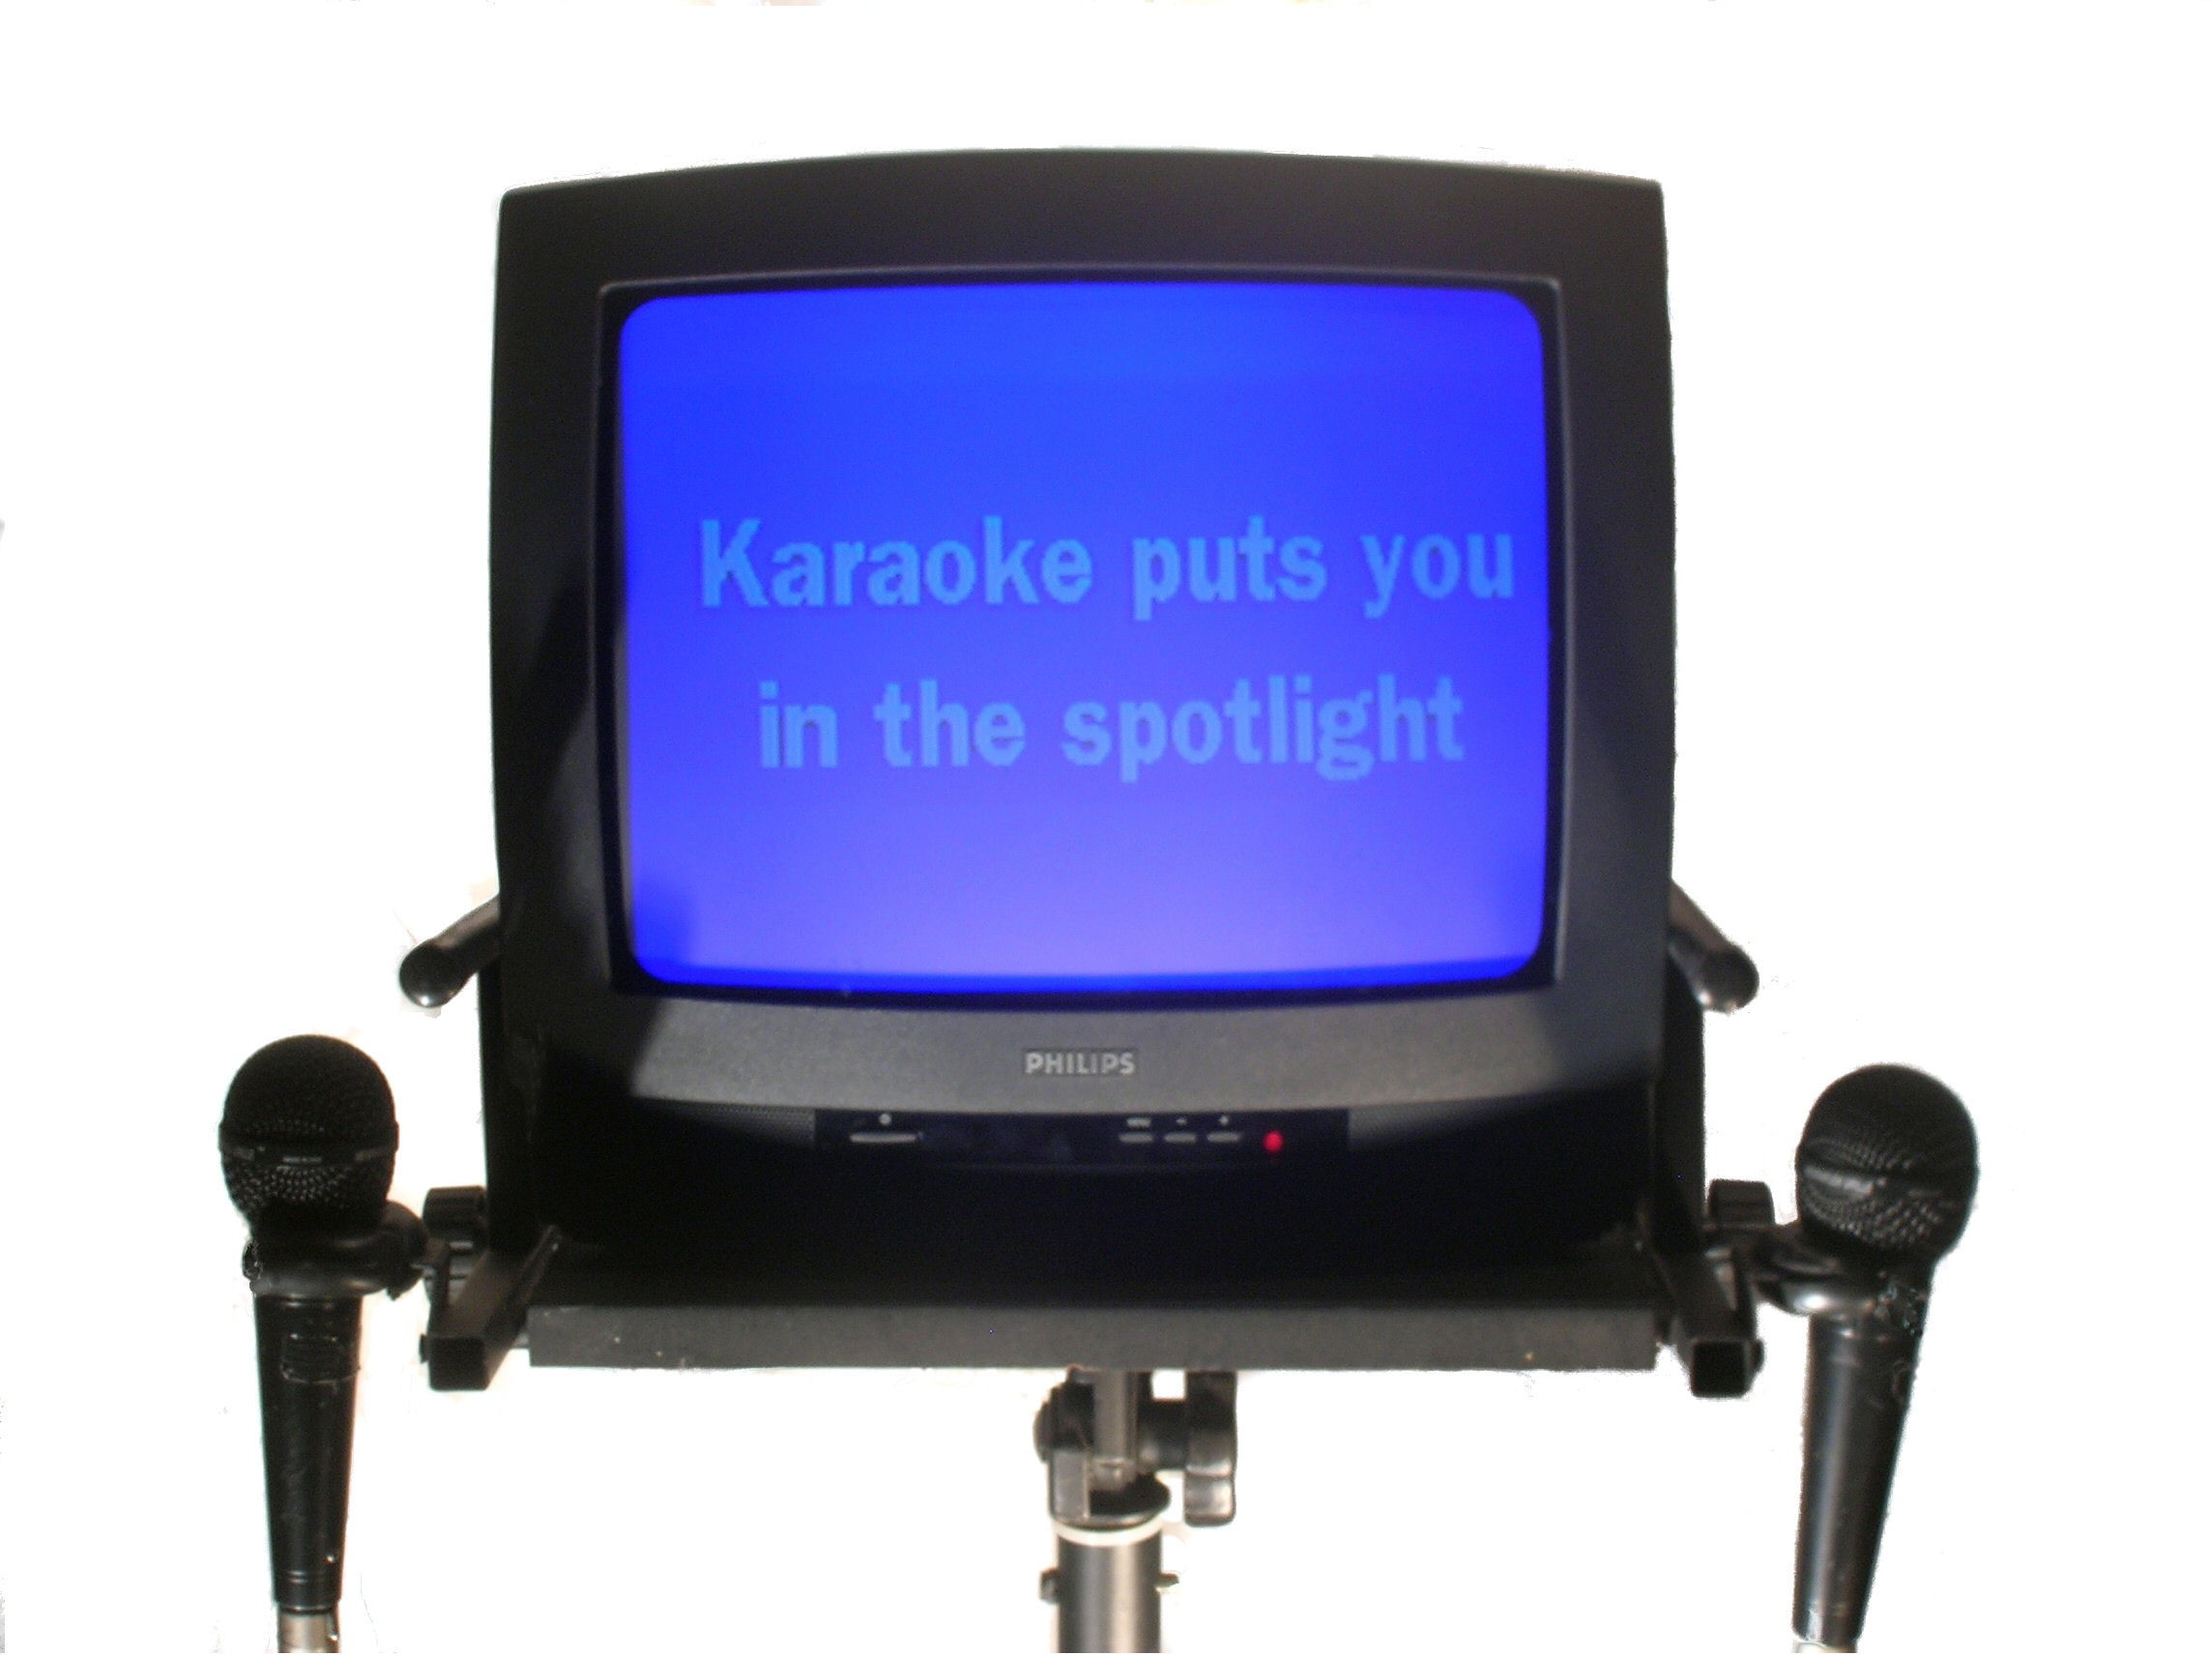 Karaoke Hire Palmerston North